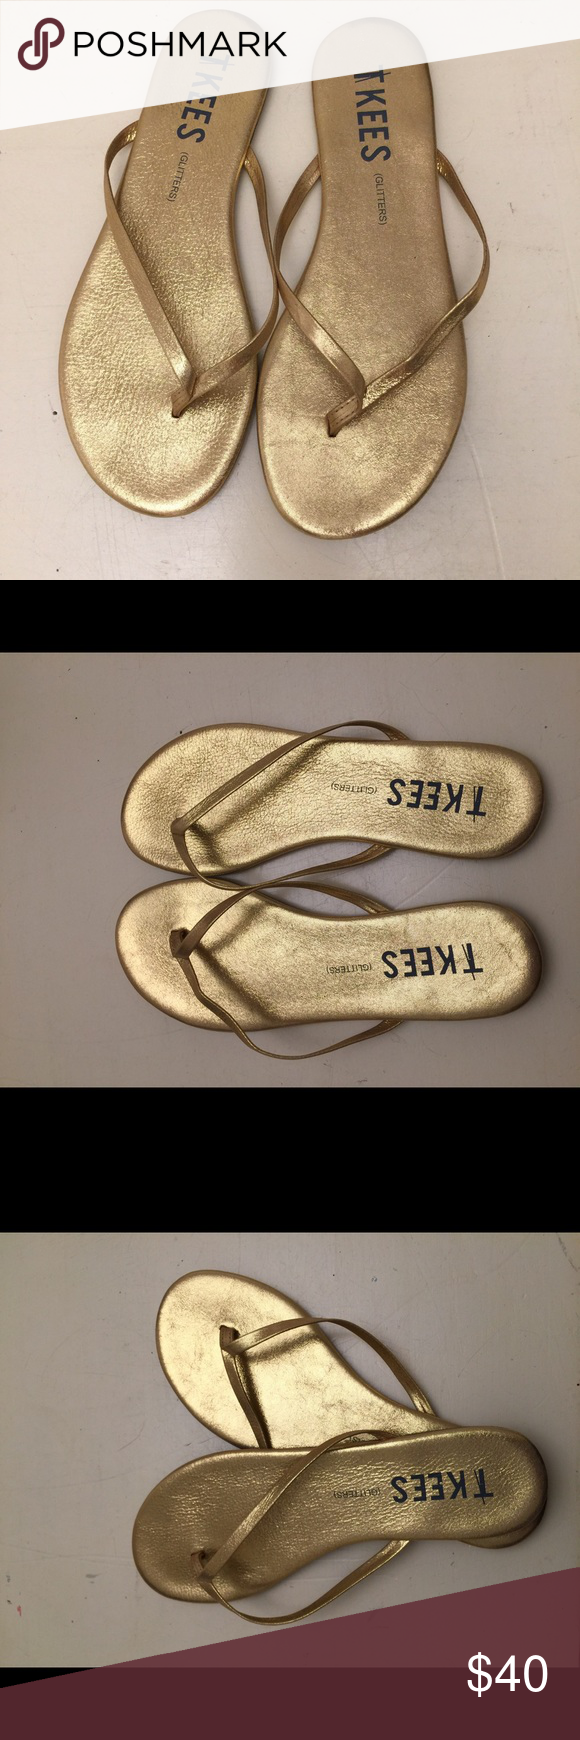 Tkees - Gold Sandal Never worn! Perfect summer sandal. Tkees Shoes Sandals